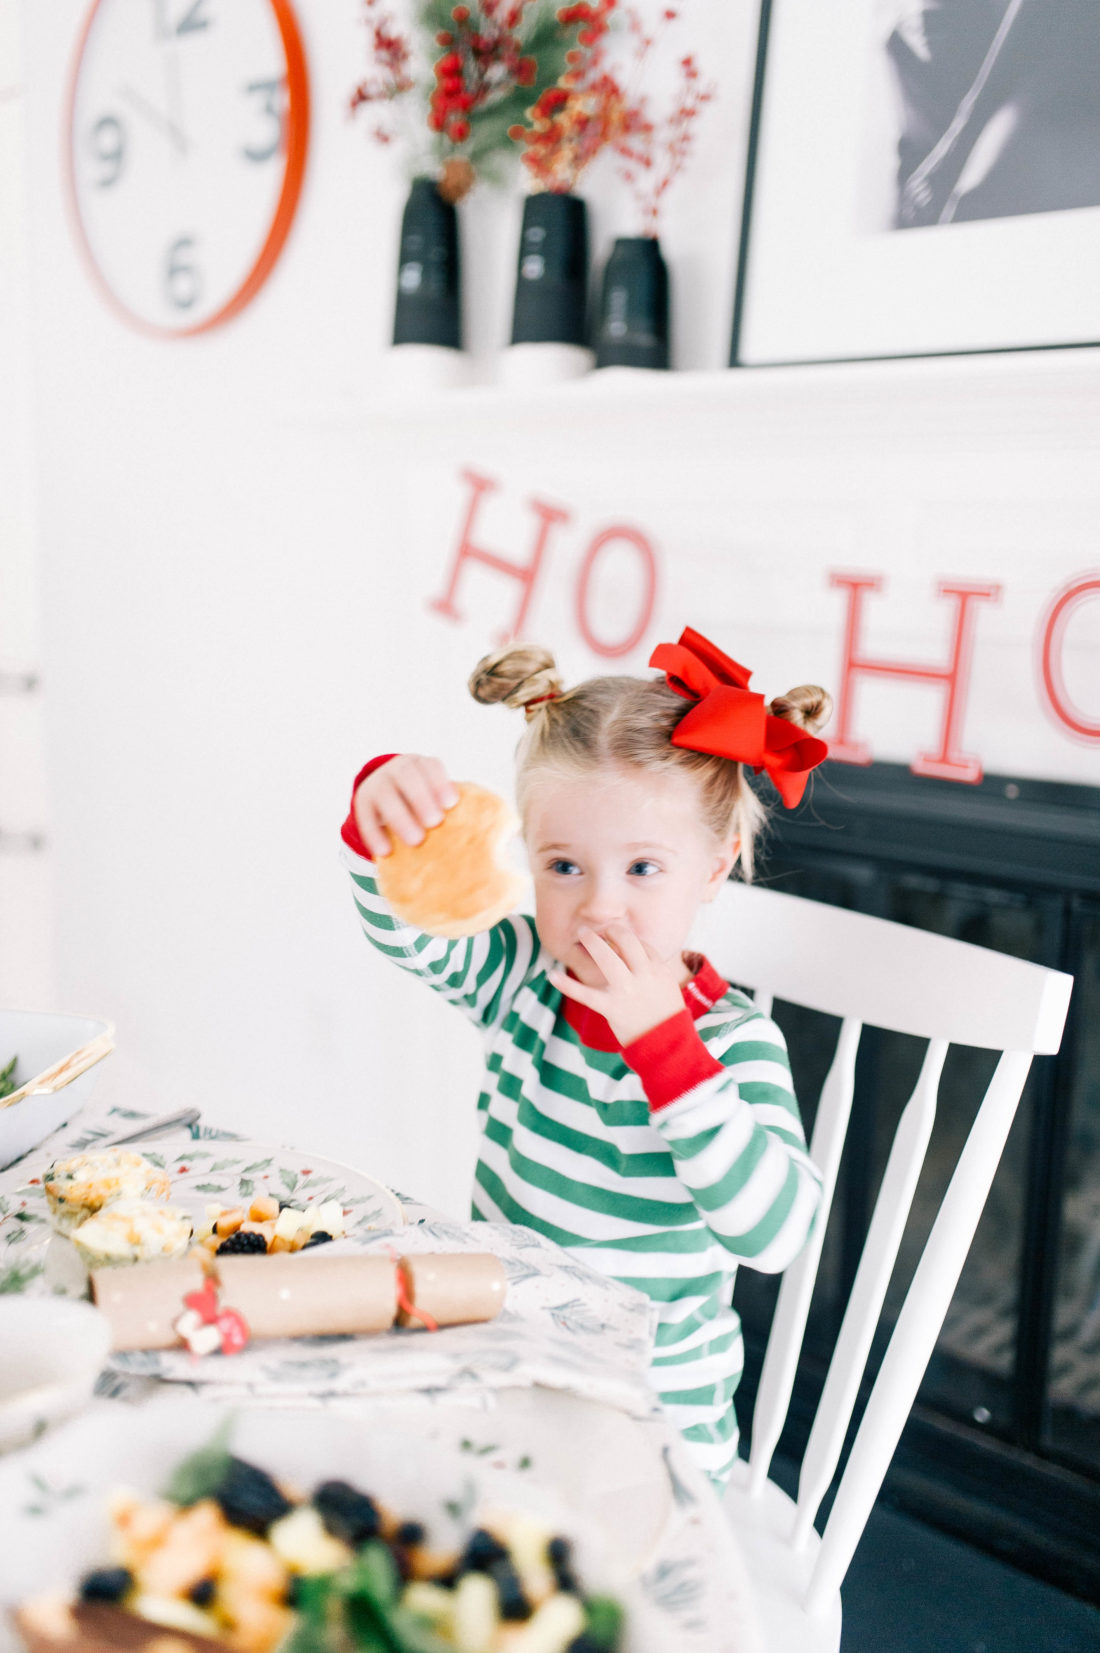 Marlowe Martino holds up a buttermilk biscuit at her family's christmas day brunch at home in Connecticut